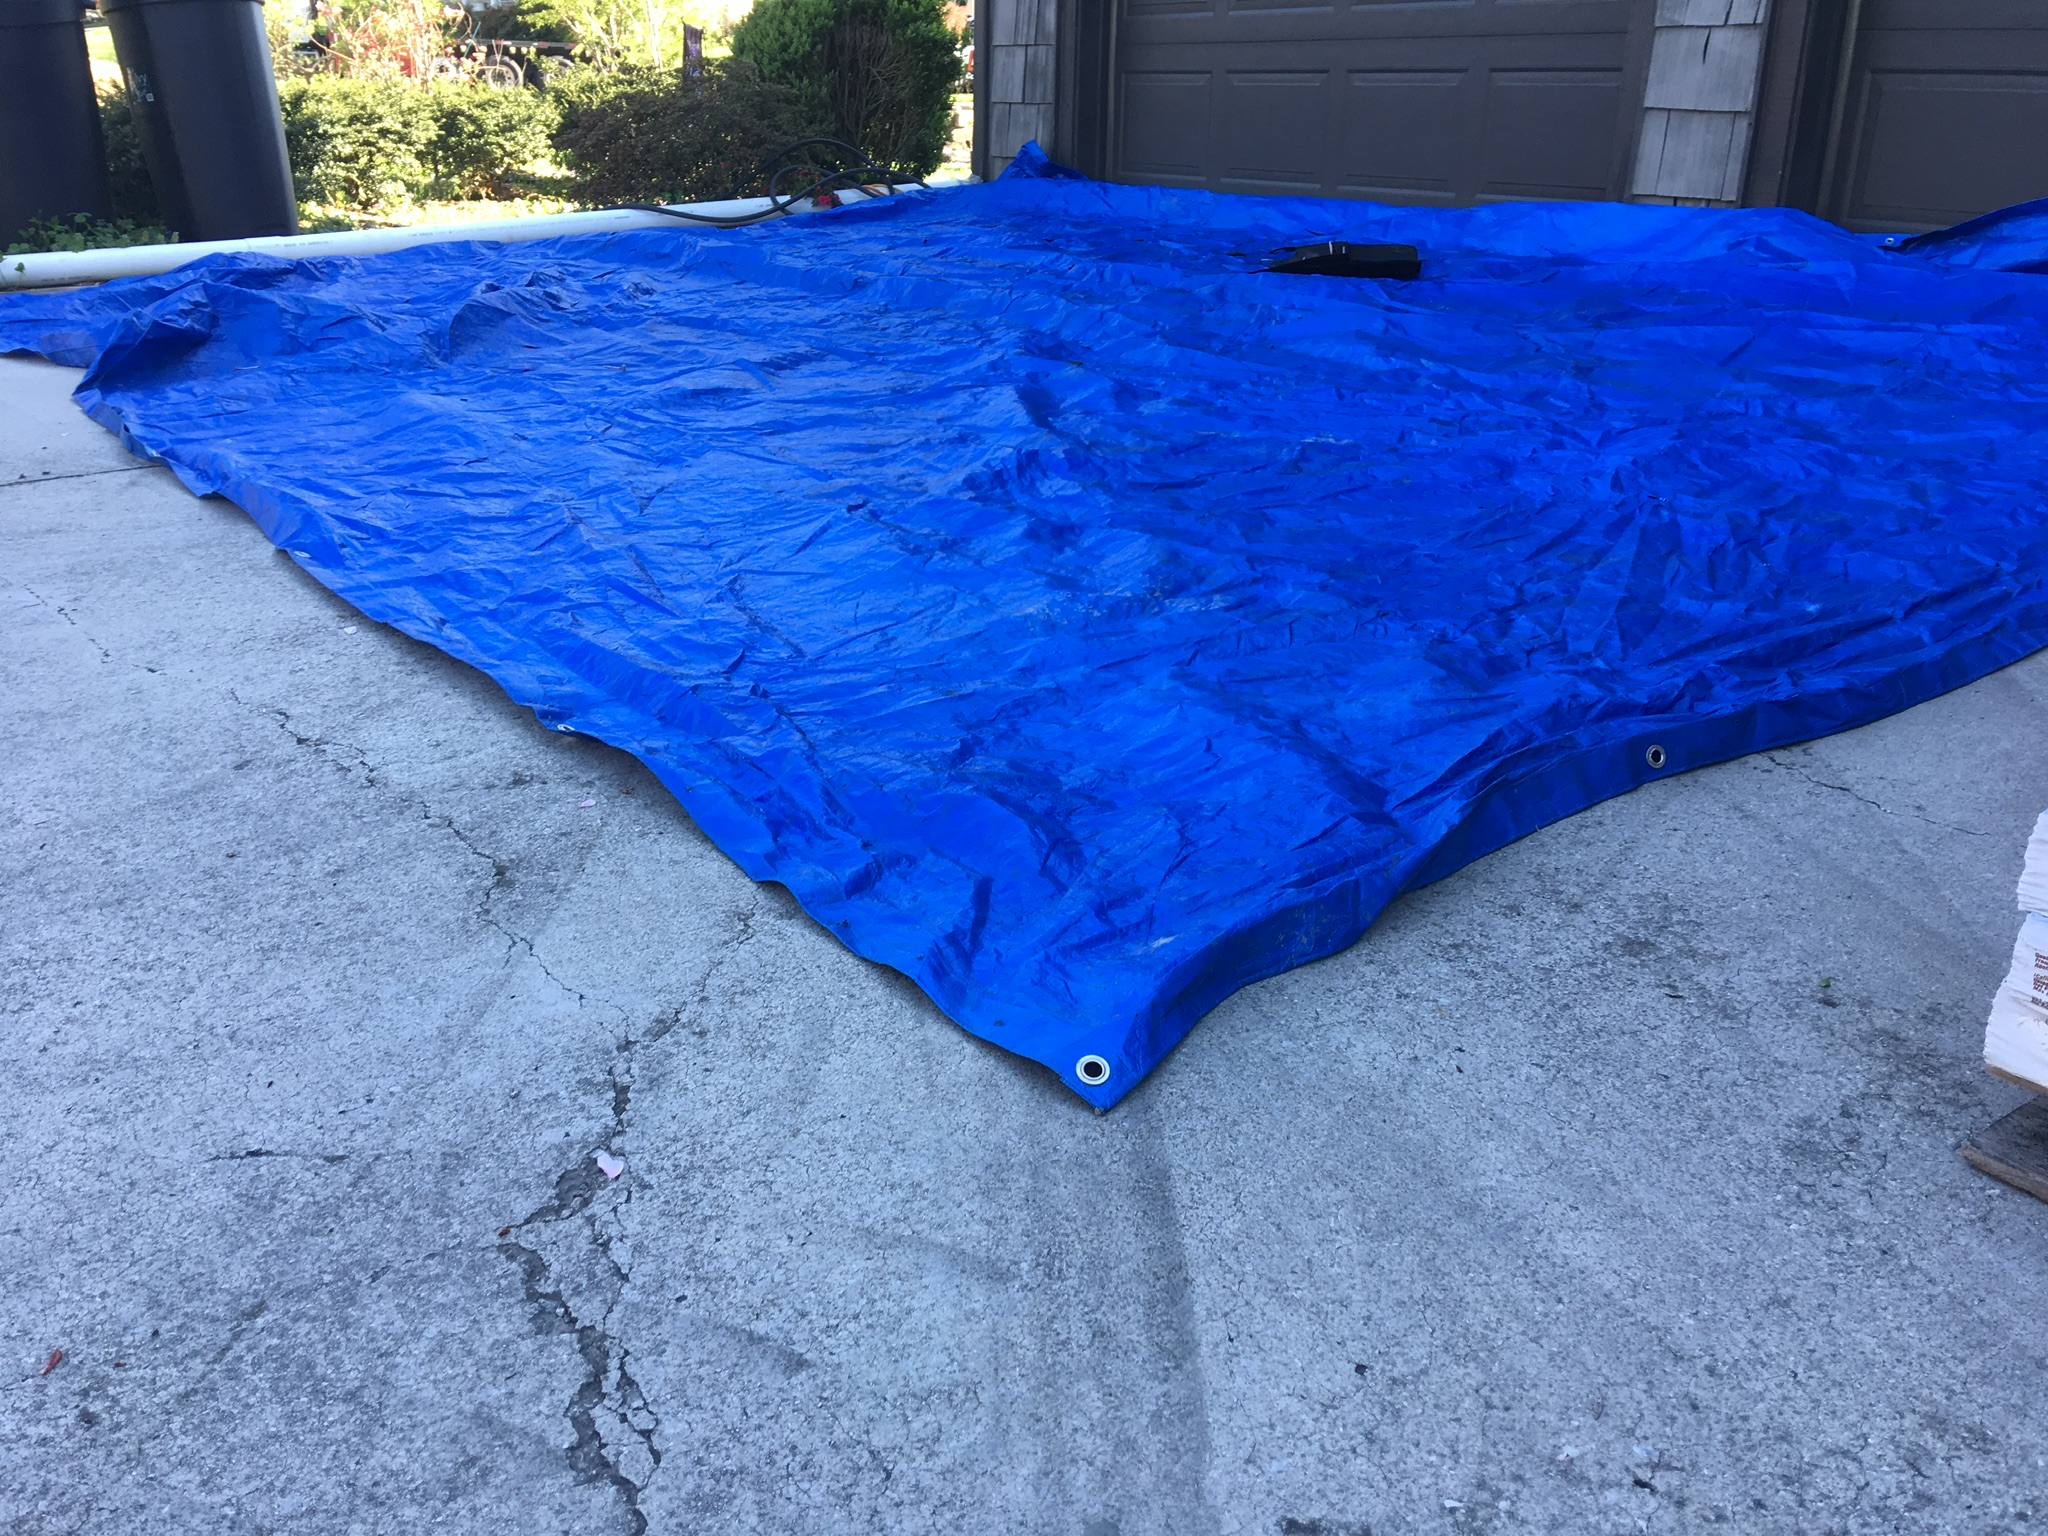 A blue tarp was placed on the concrete driveway in preparation of the materials being delivered to help protect the driveway.